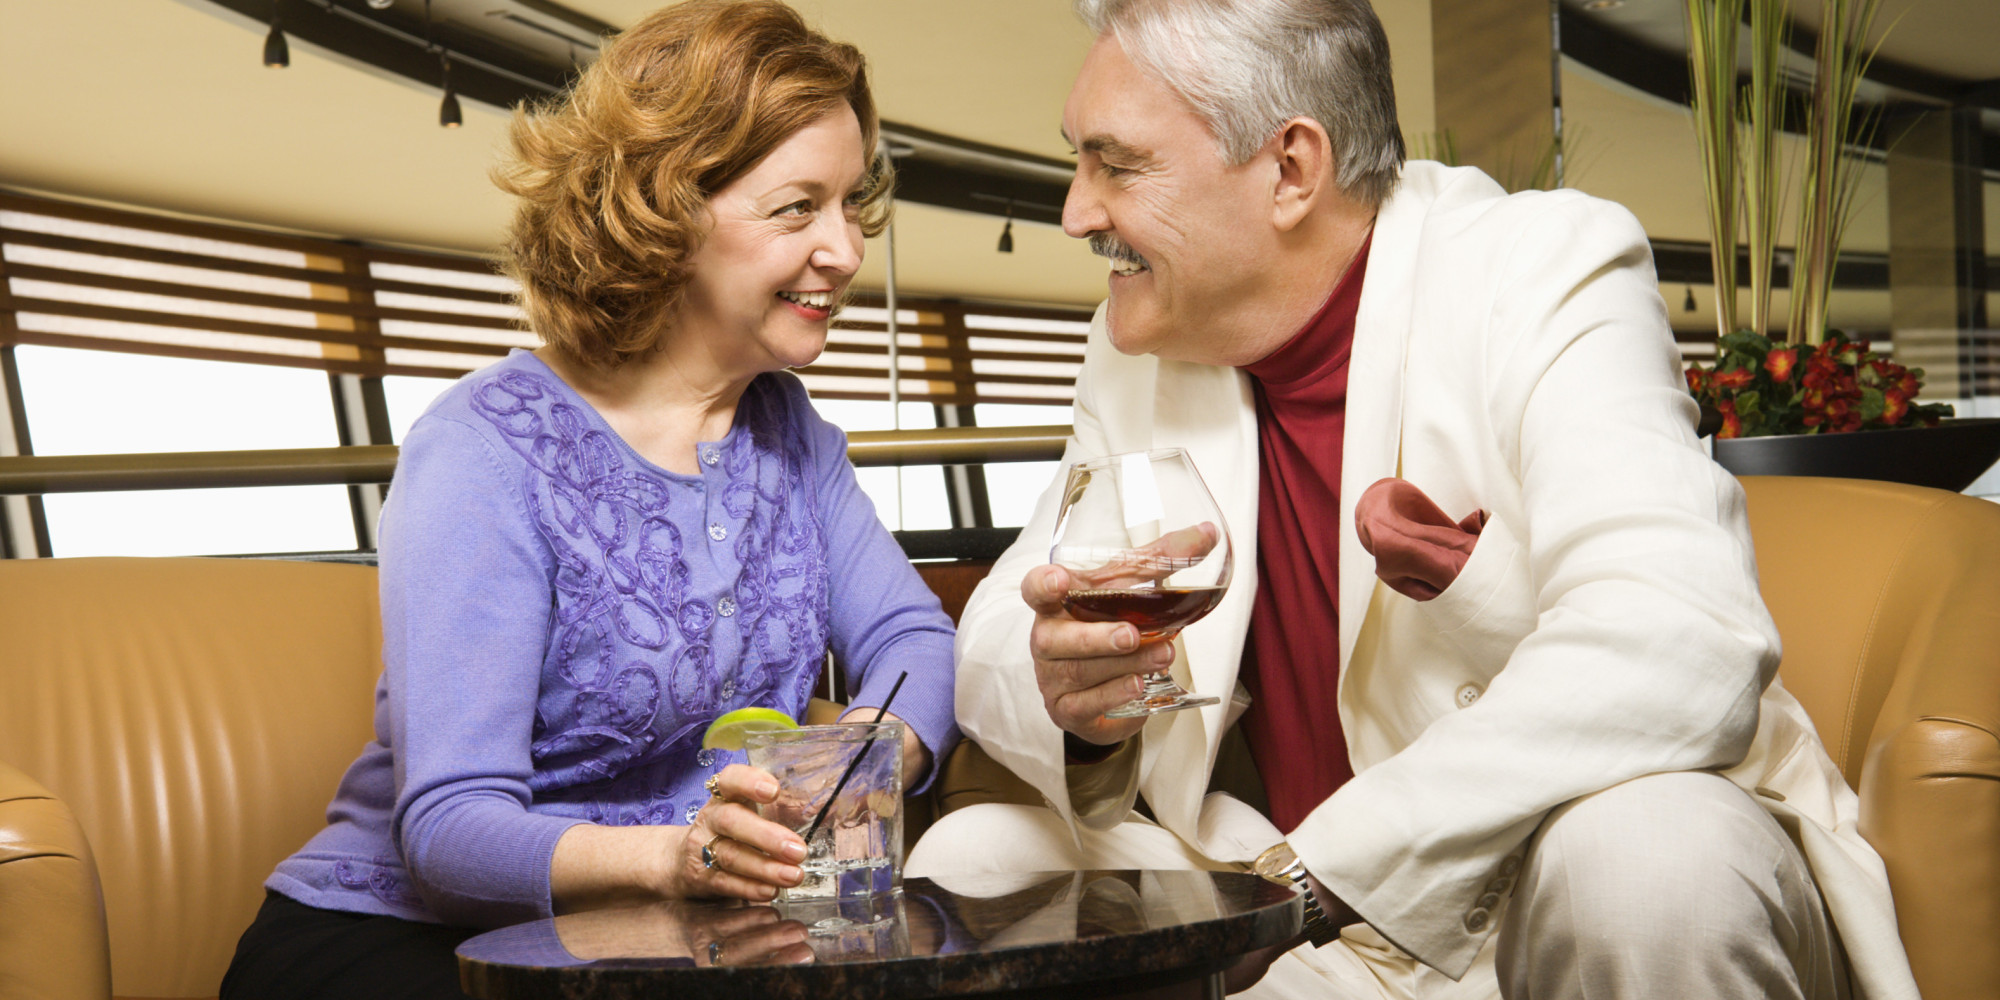 middle age dating Many men between mid 40s and 65 have issues with mid-life crisis, finance, relationships, and health & lifestyle choices welcome to 50ishorg.